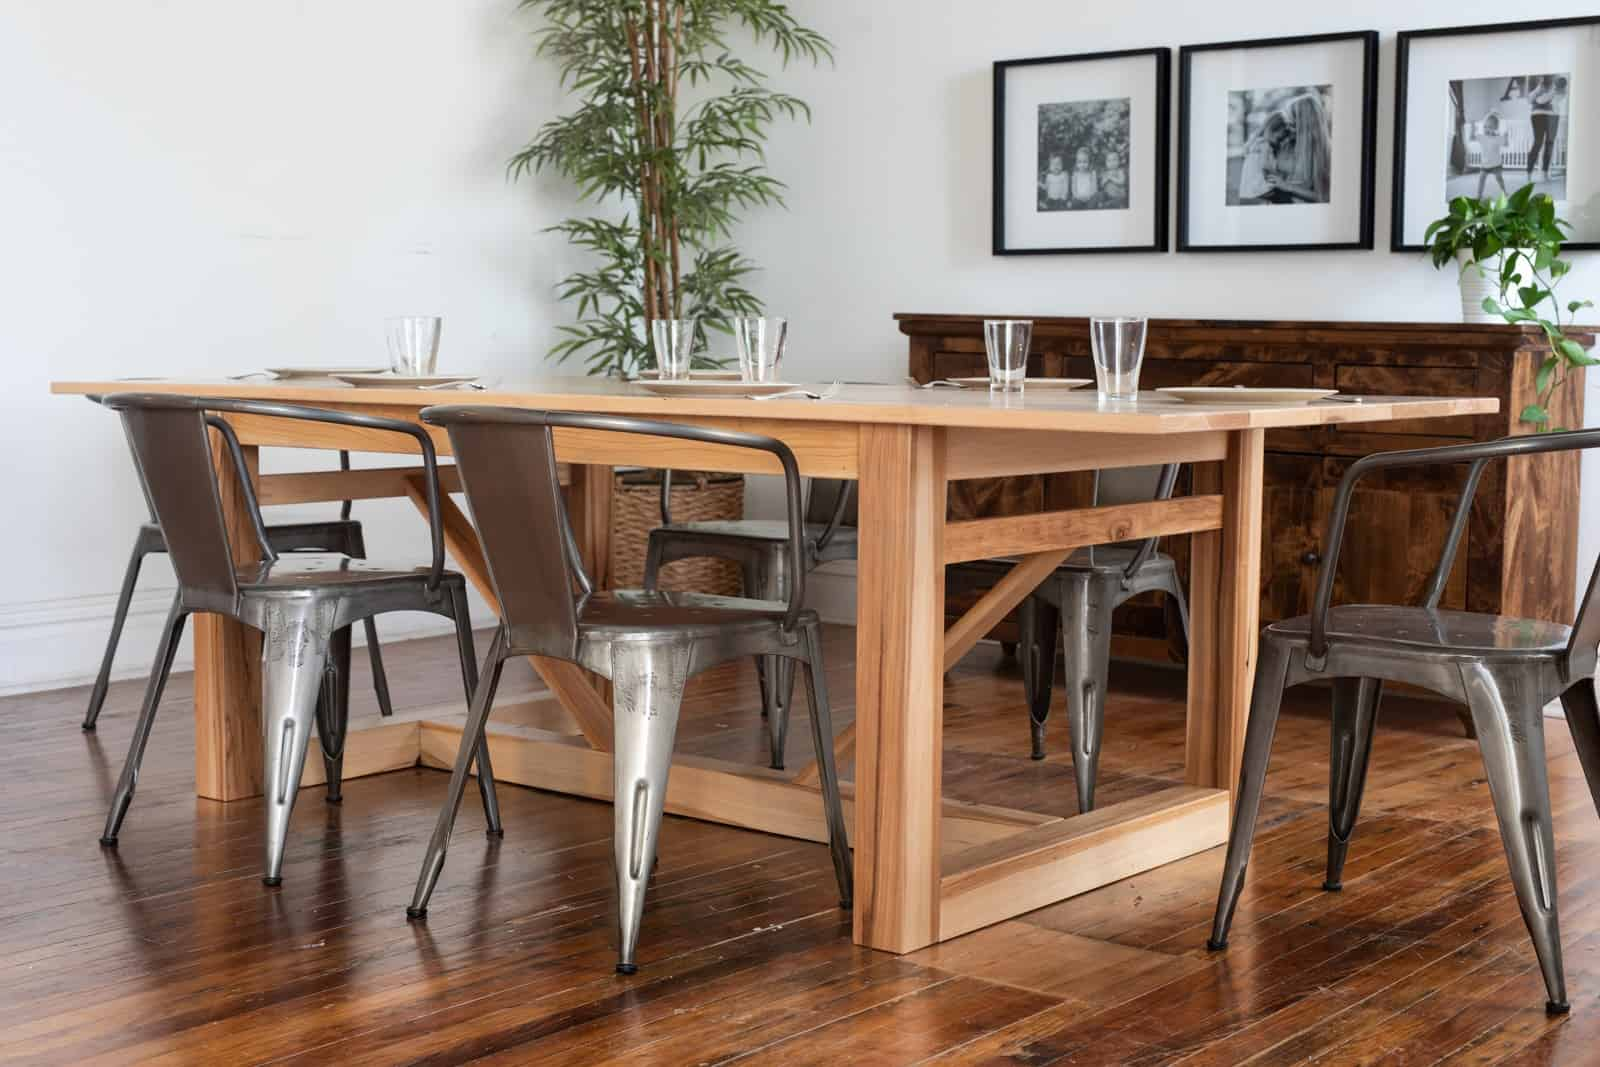 Unruh's Barnyard Table for the kitchen or dining room